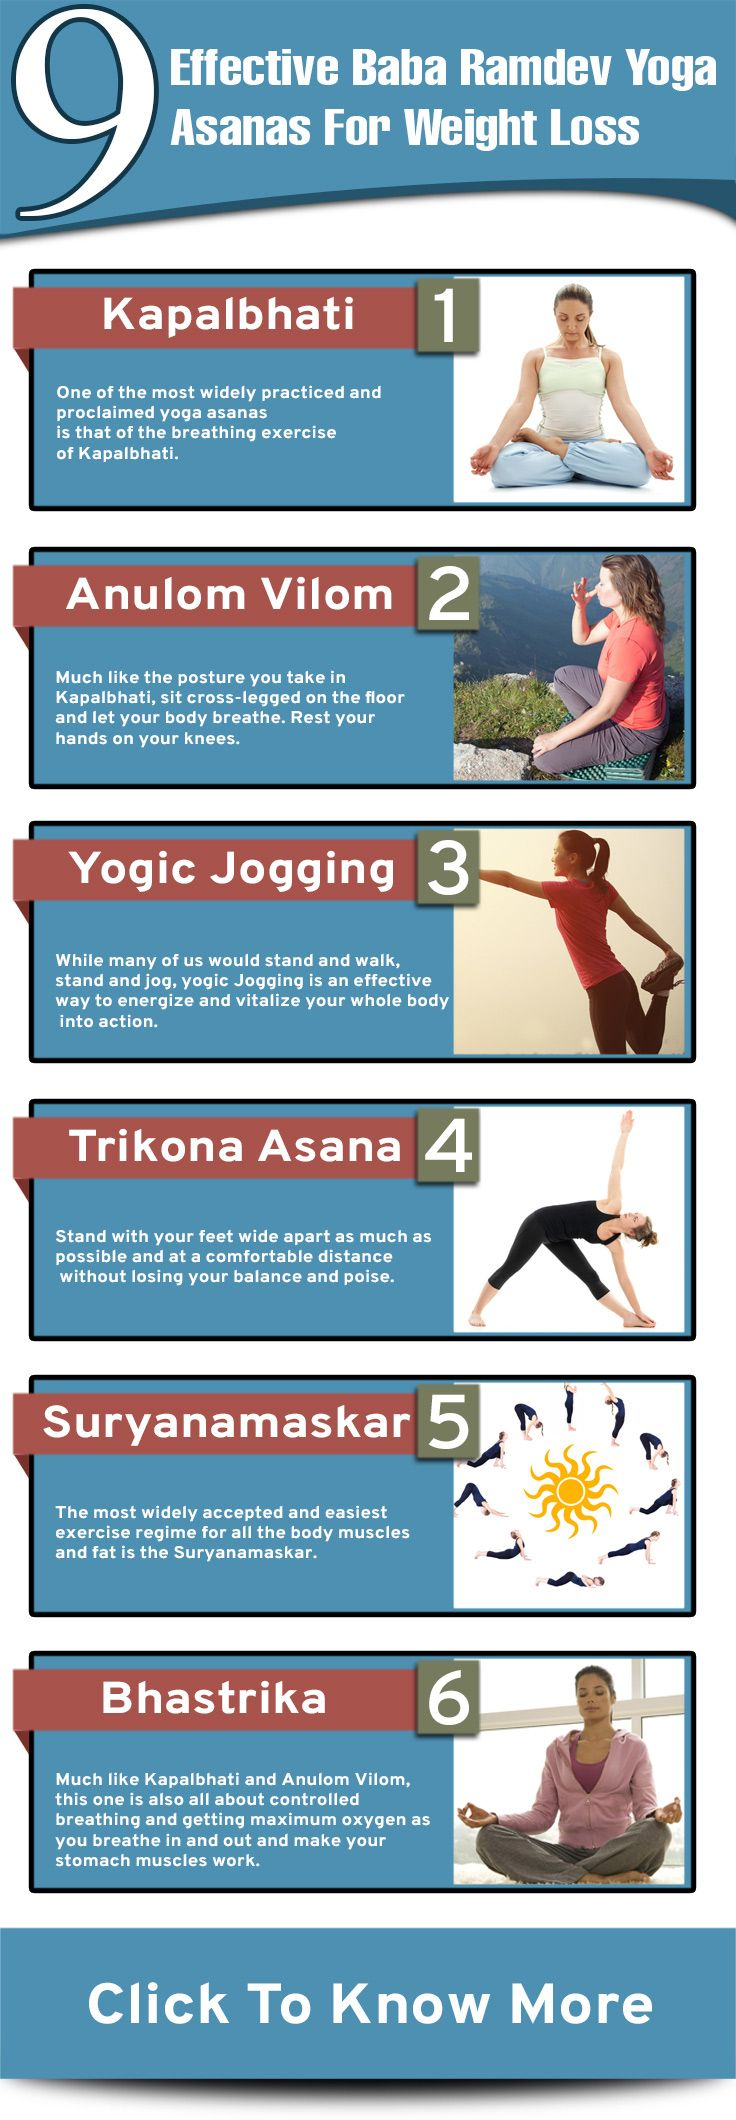 9 Effective Baba Ramdev Yoga Asanas For Weight Loss